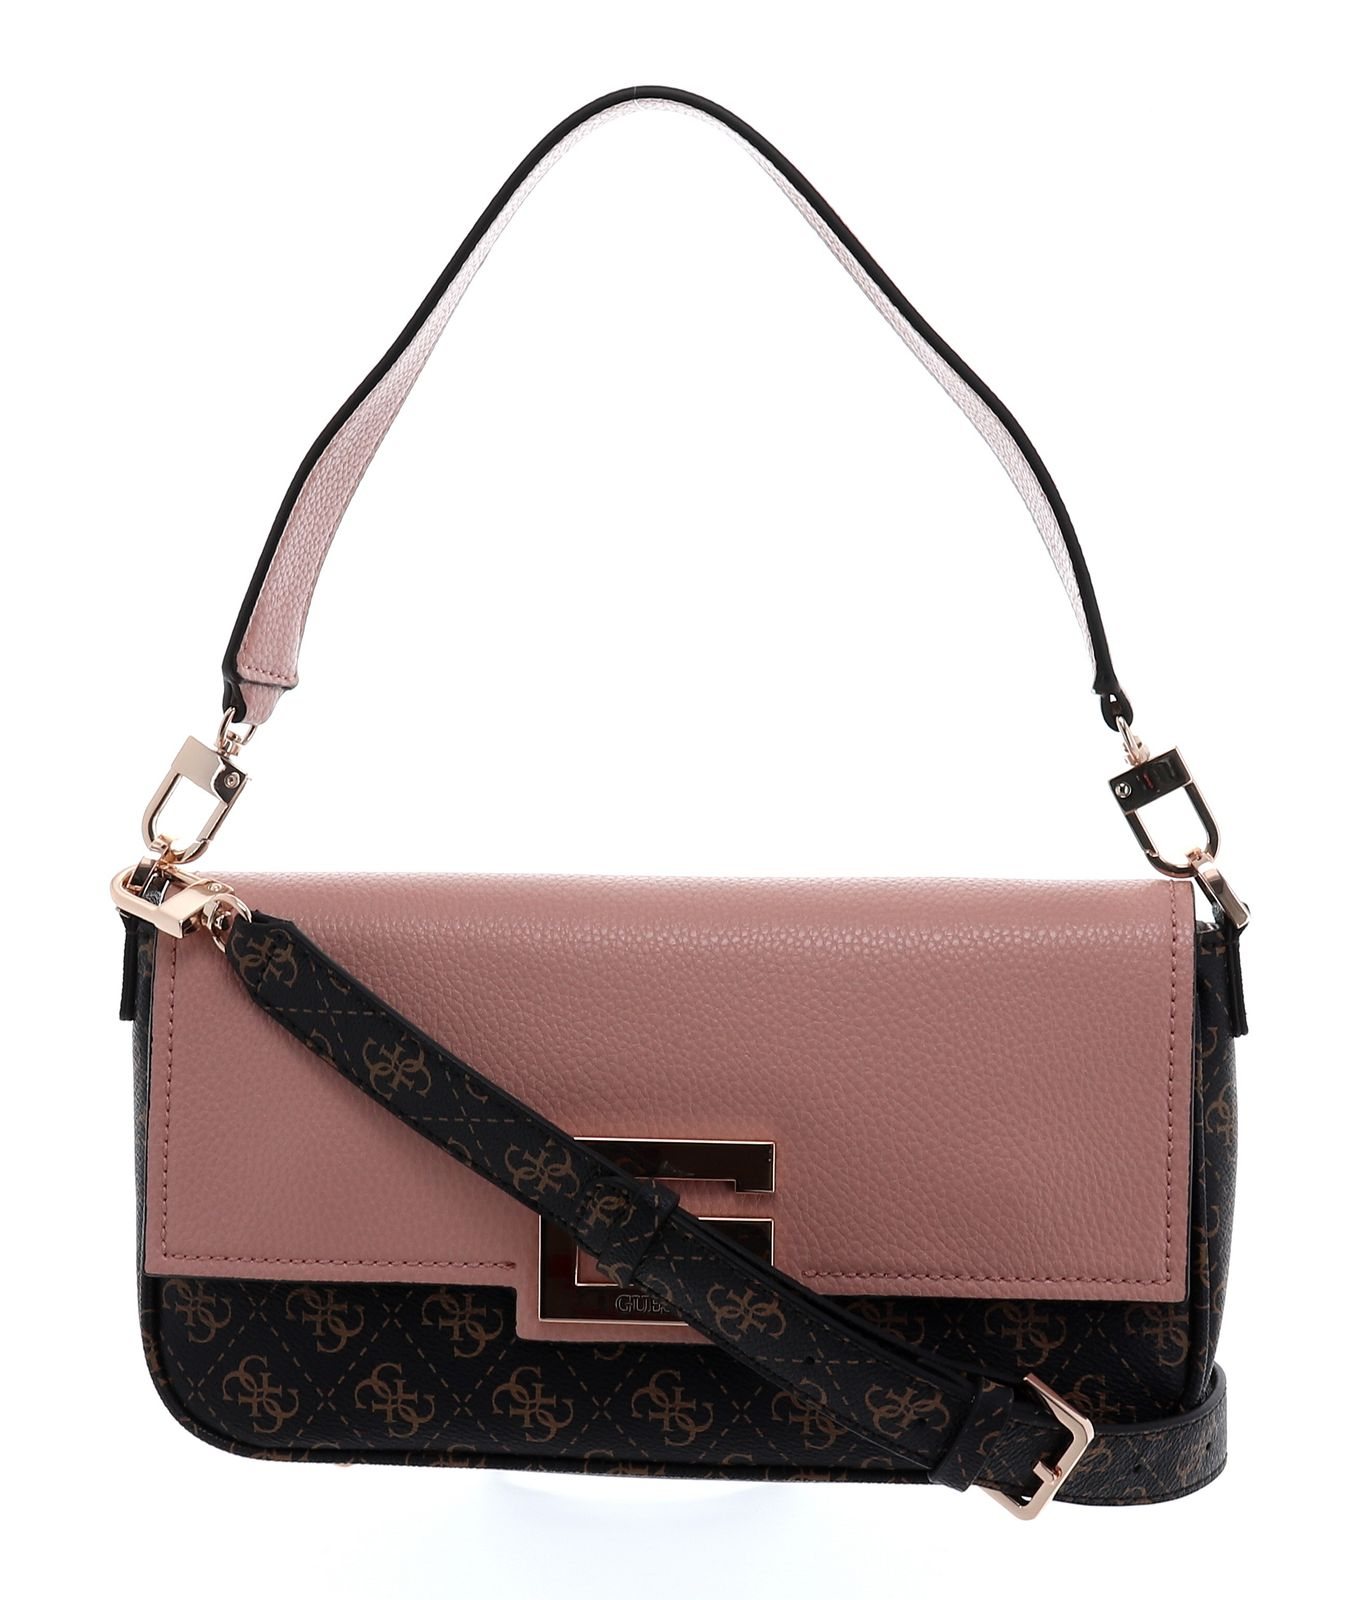 Guess Umhängetasche Brightside Shoulder Bag Brown Multi in braun für Damen